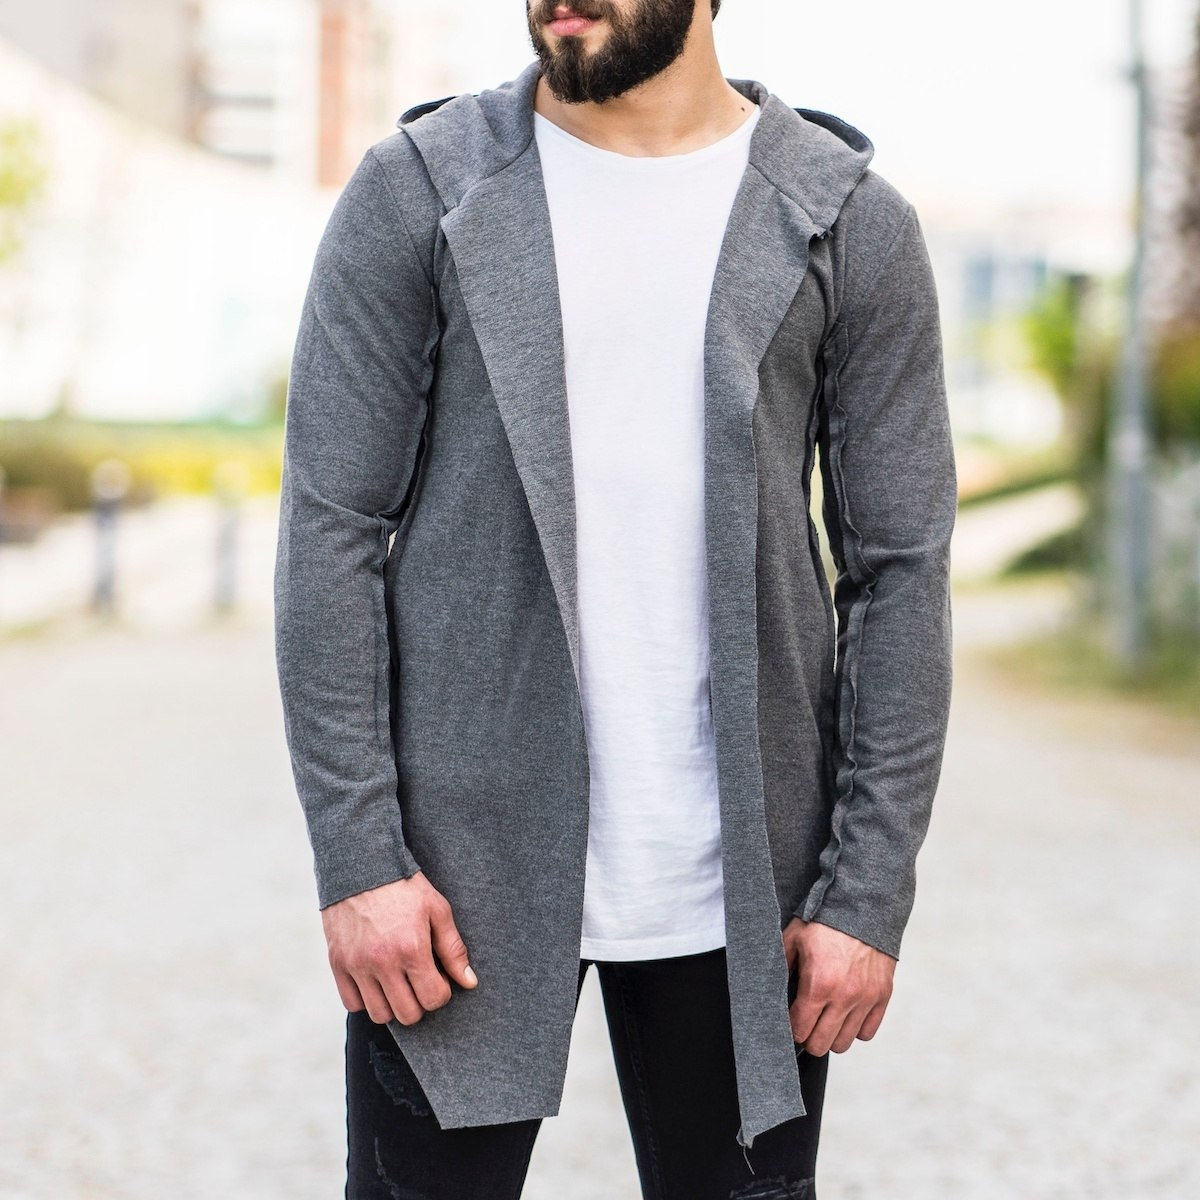 Reverse Stiched Gray Cardigan